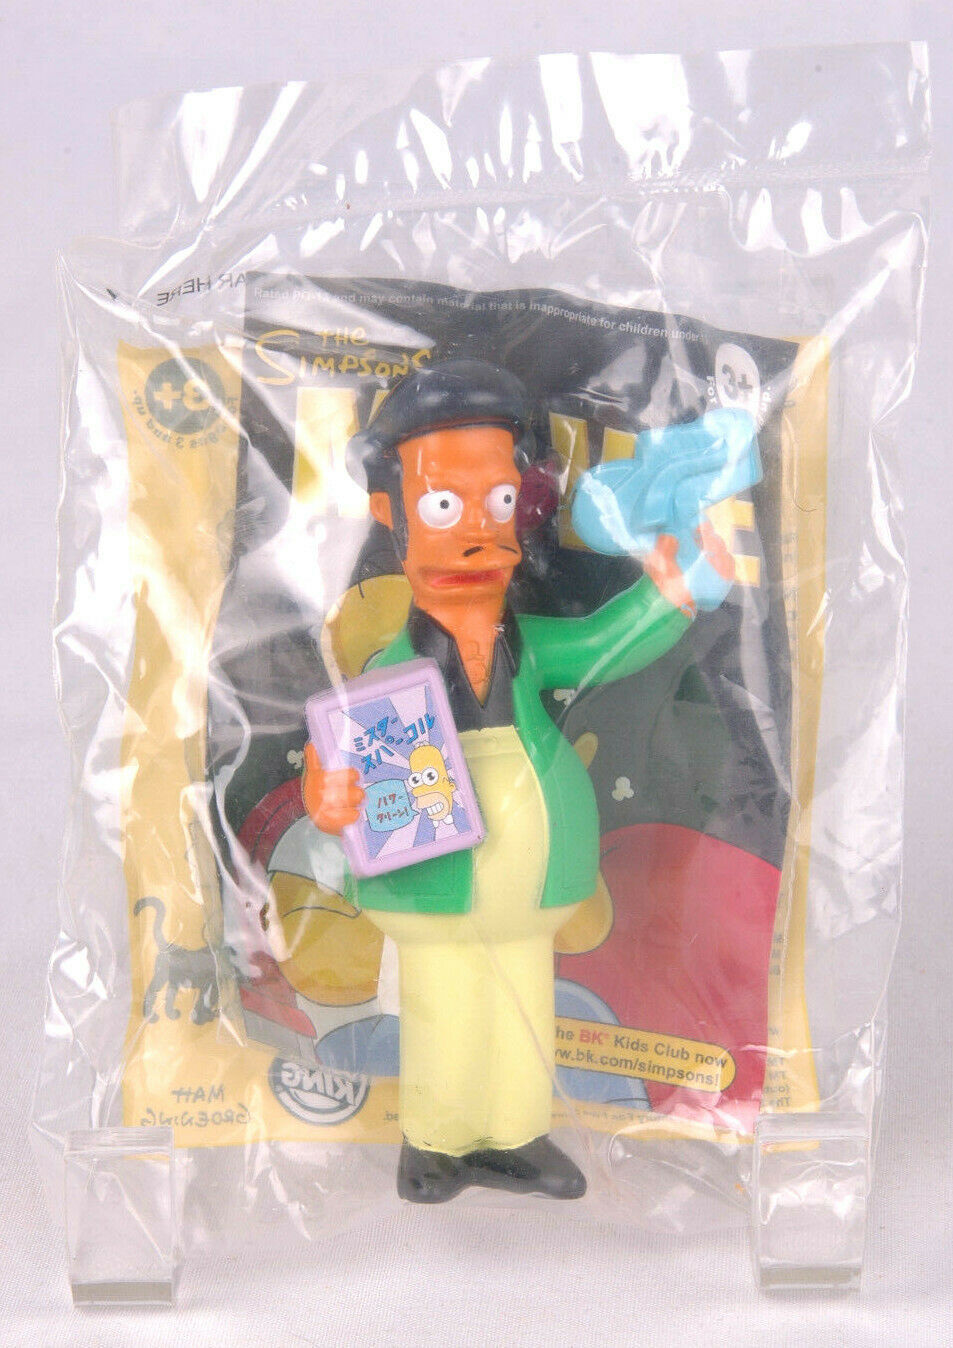 New 2007 The Simpsons Movie Apu Talking Burger King Kids Meal Toy